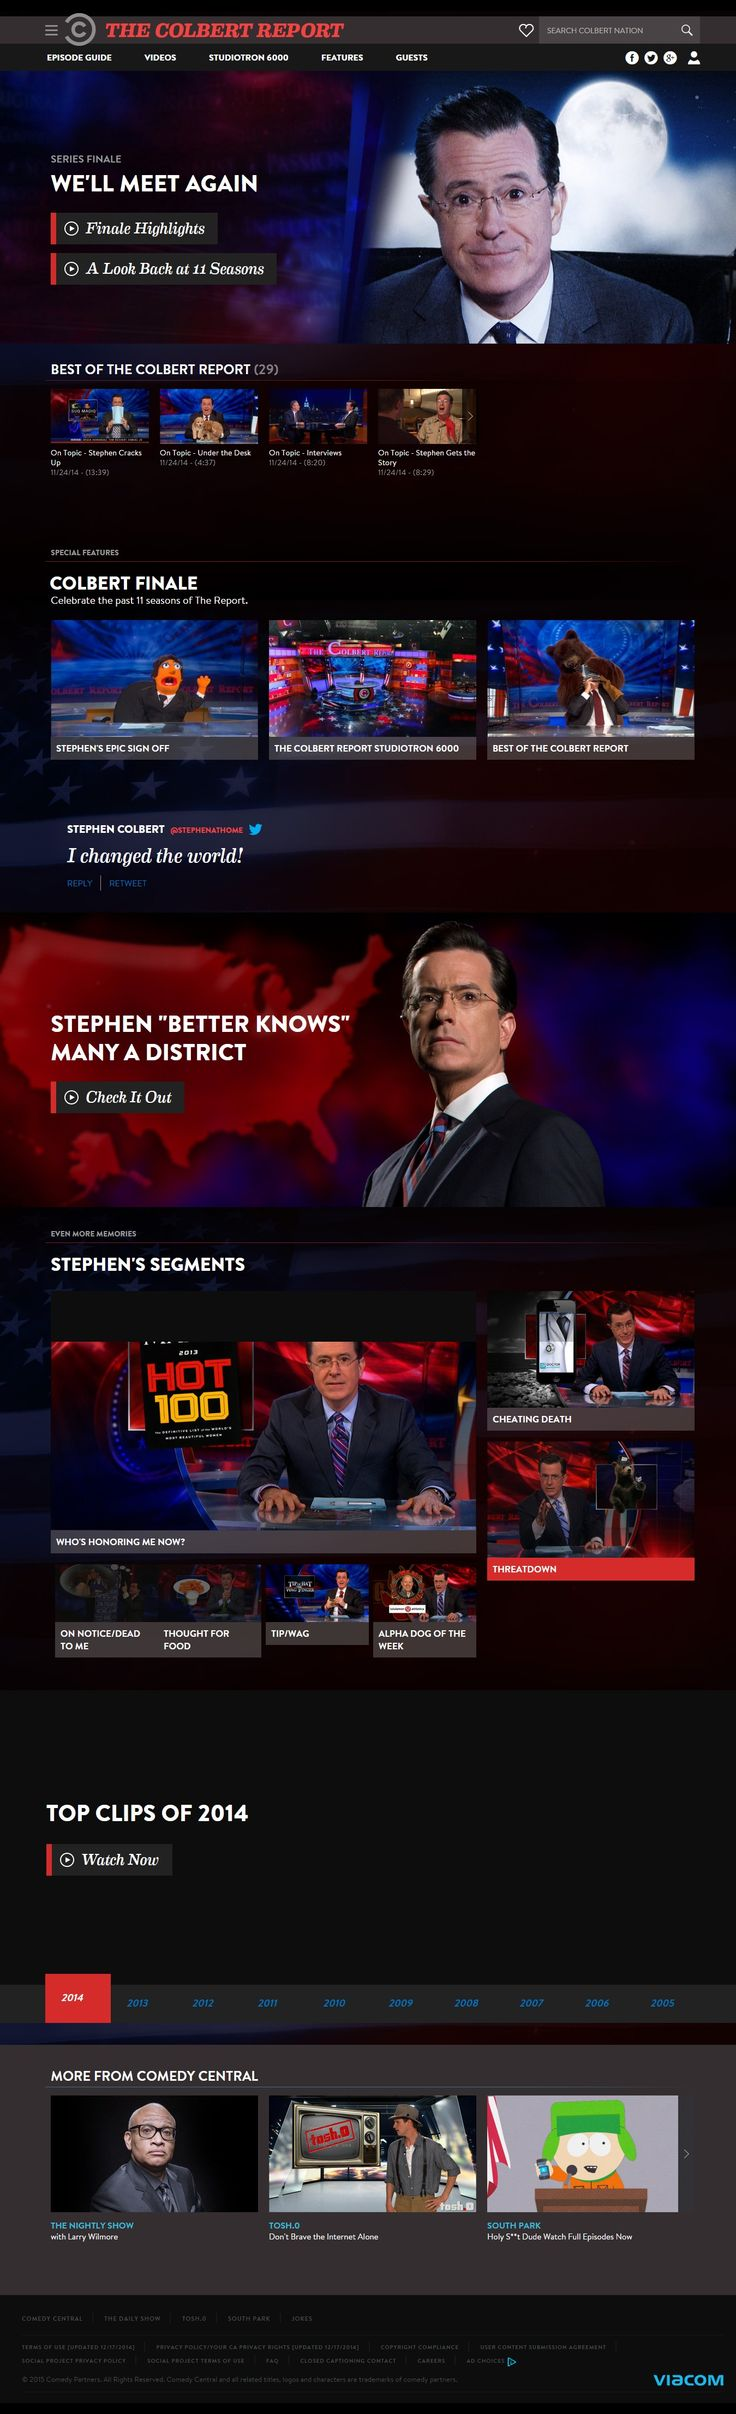 http://thecolbertreport.cc.com/